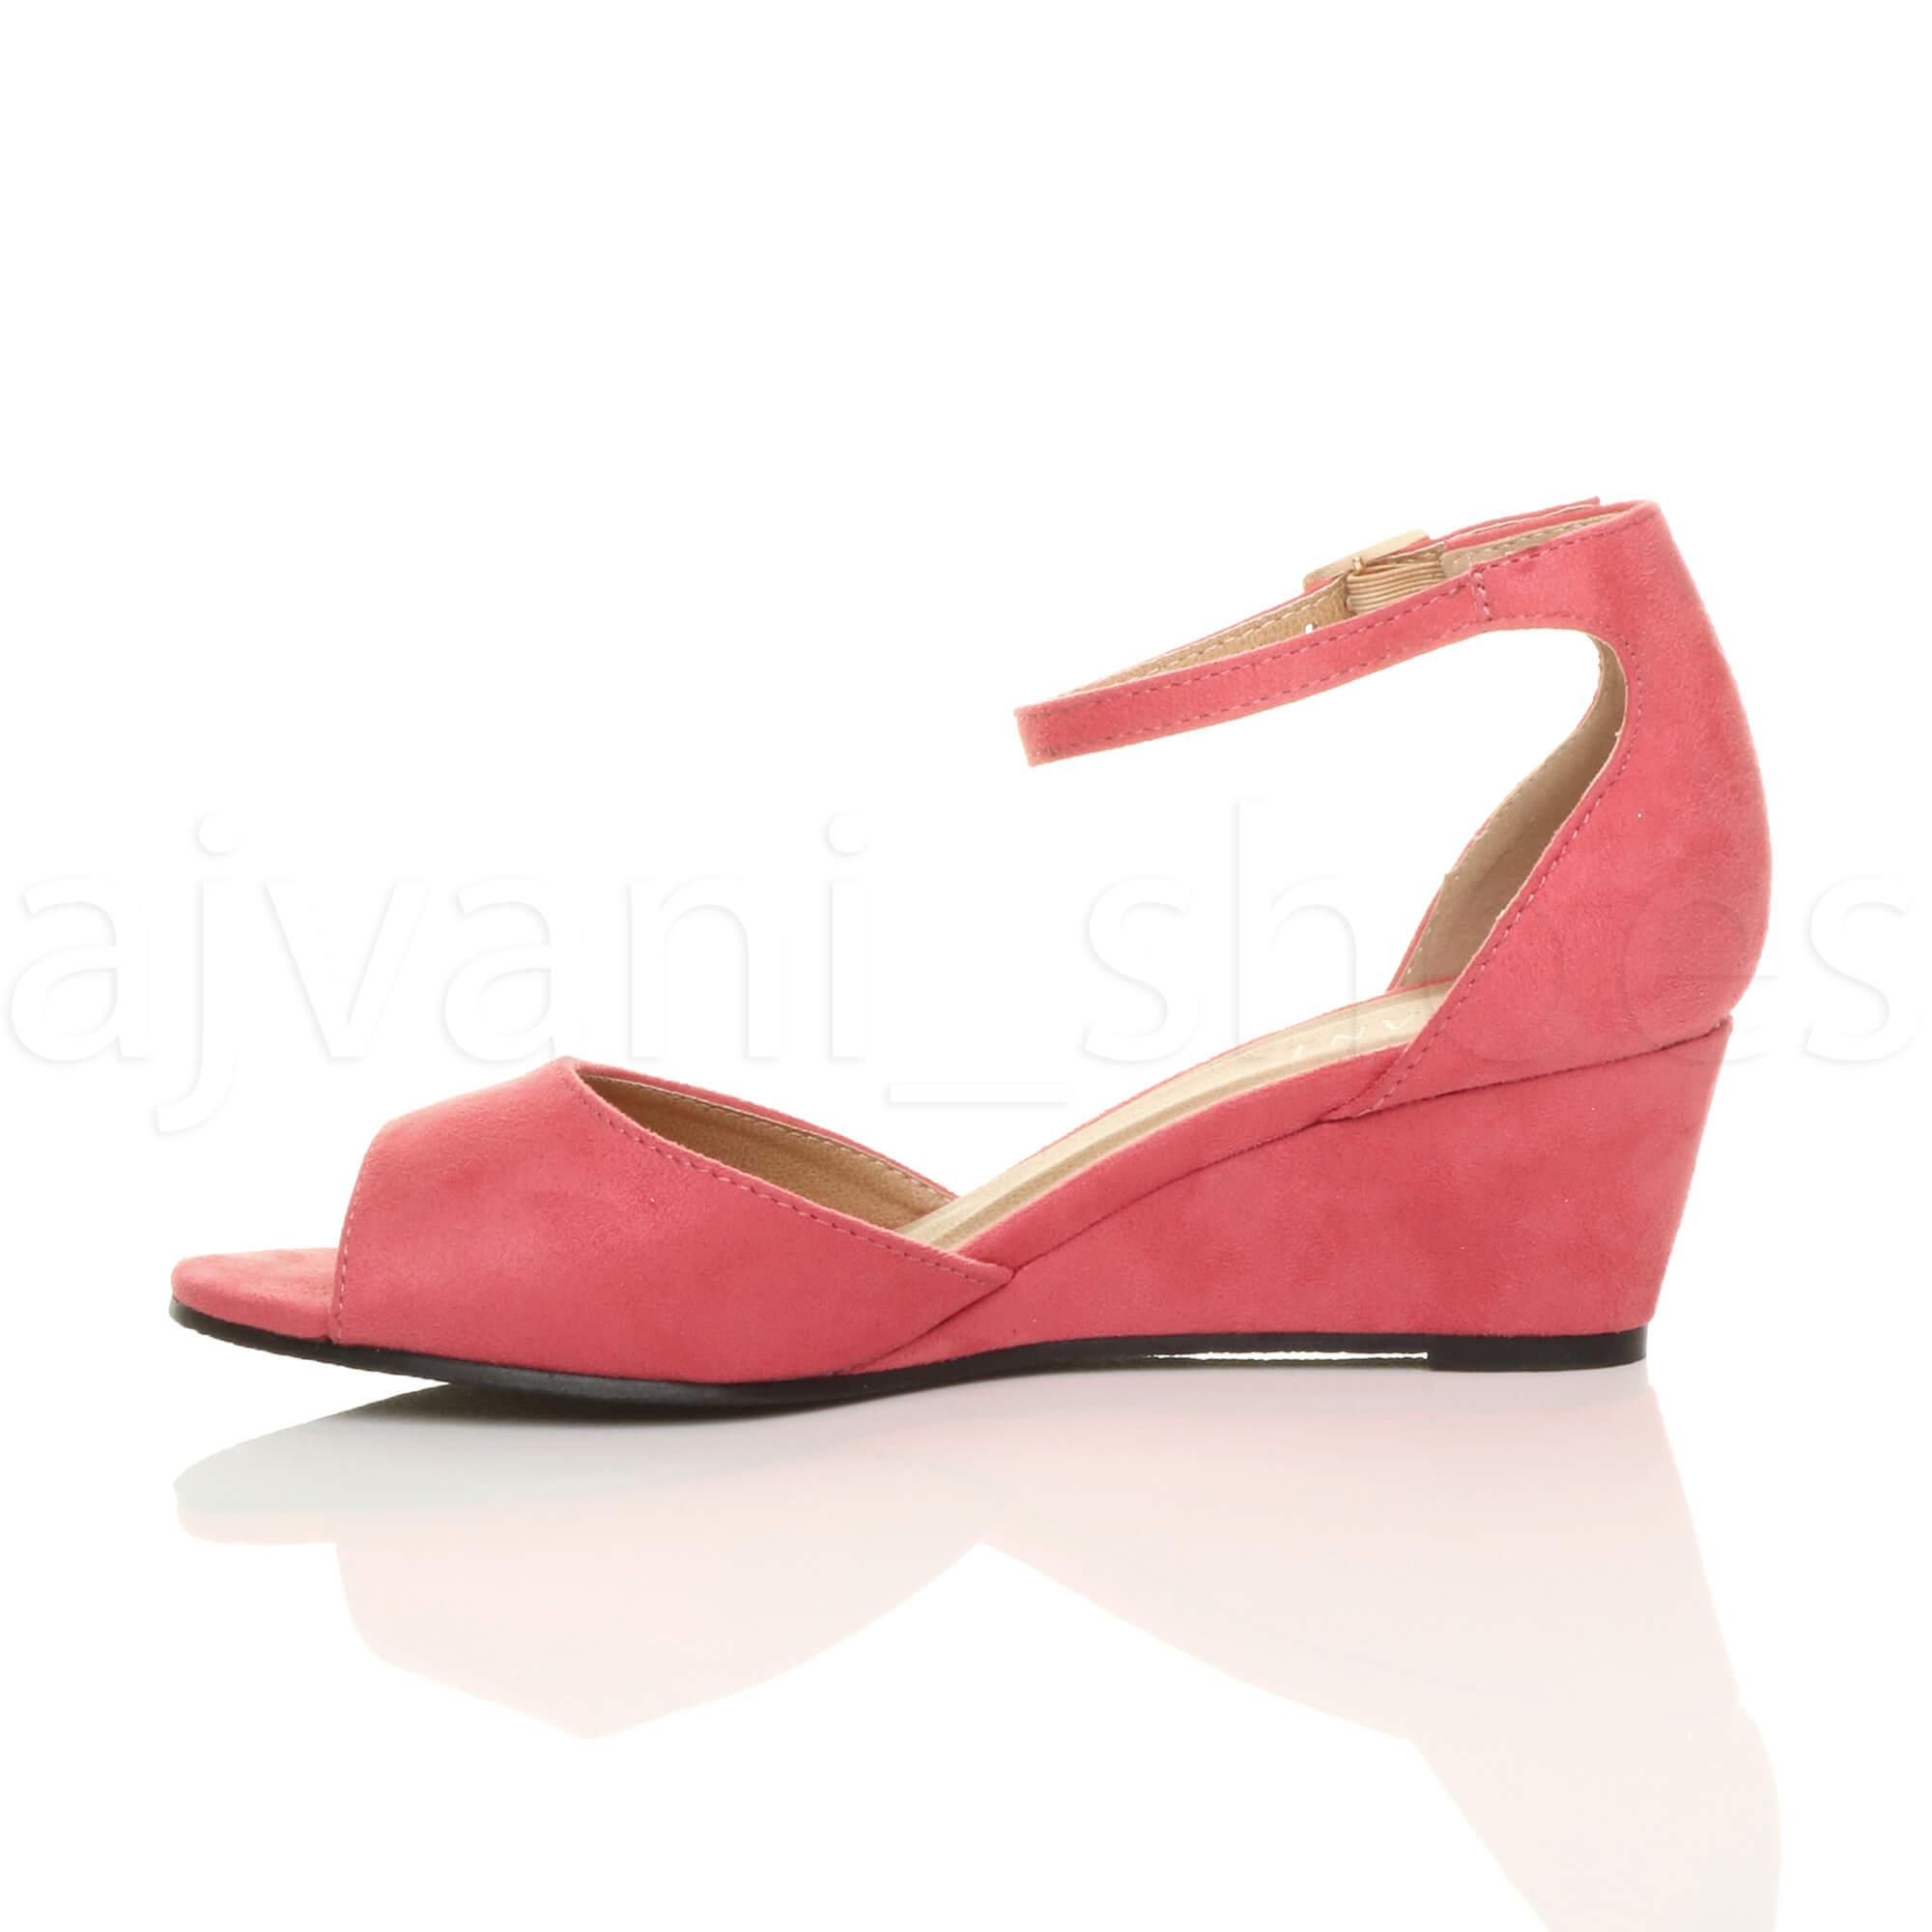 WOMENS-LADIES-LOW-MID-WEDGE-HEEL-ANKLE-STRAP-SMART-CASUAL-EVENING-SANDALS-SIZE thumbnail 36